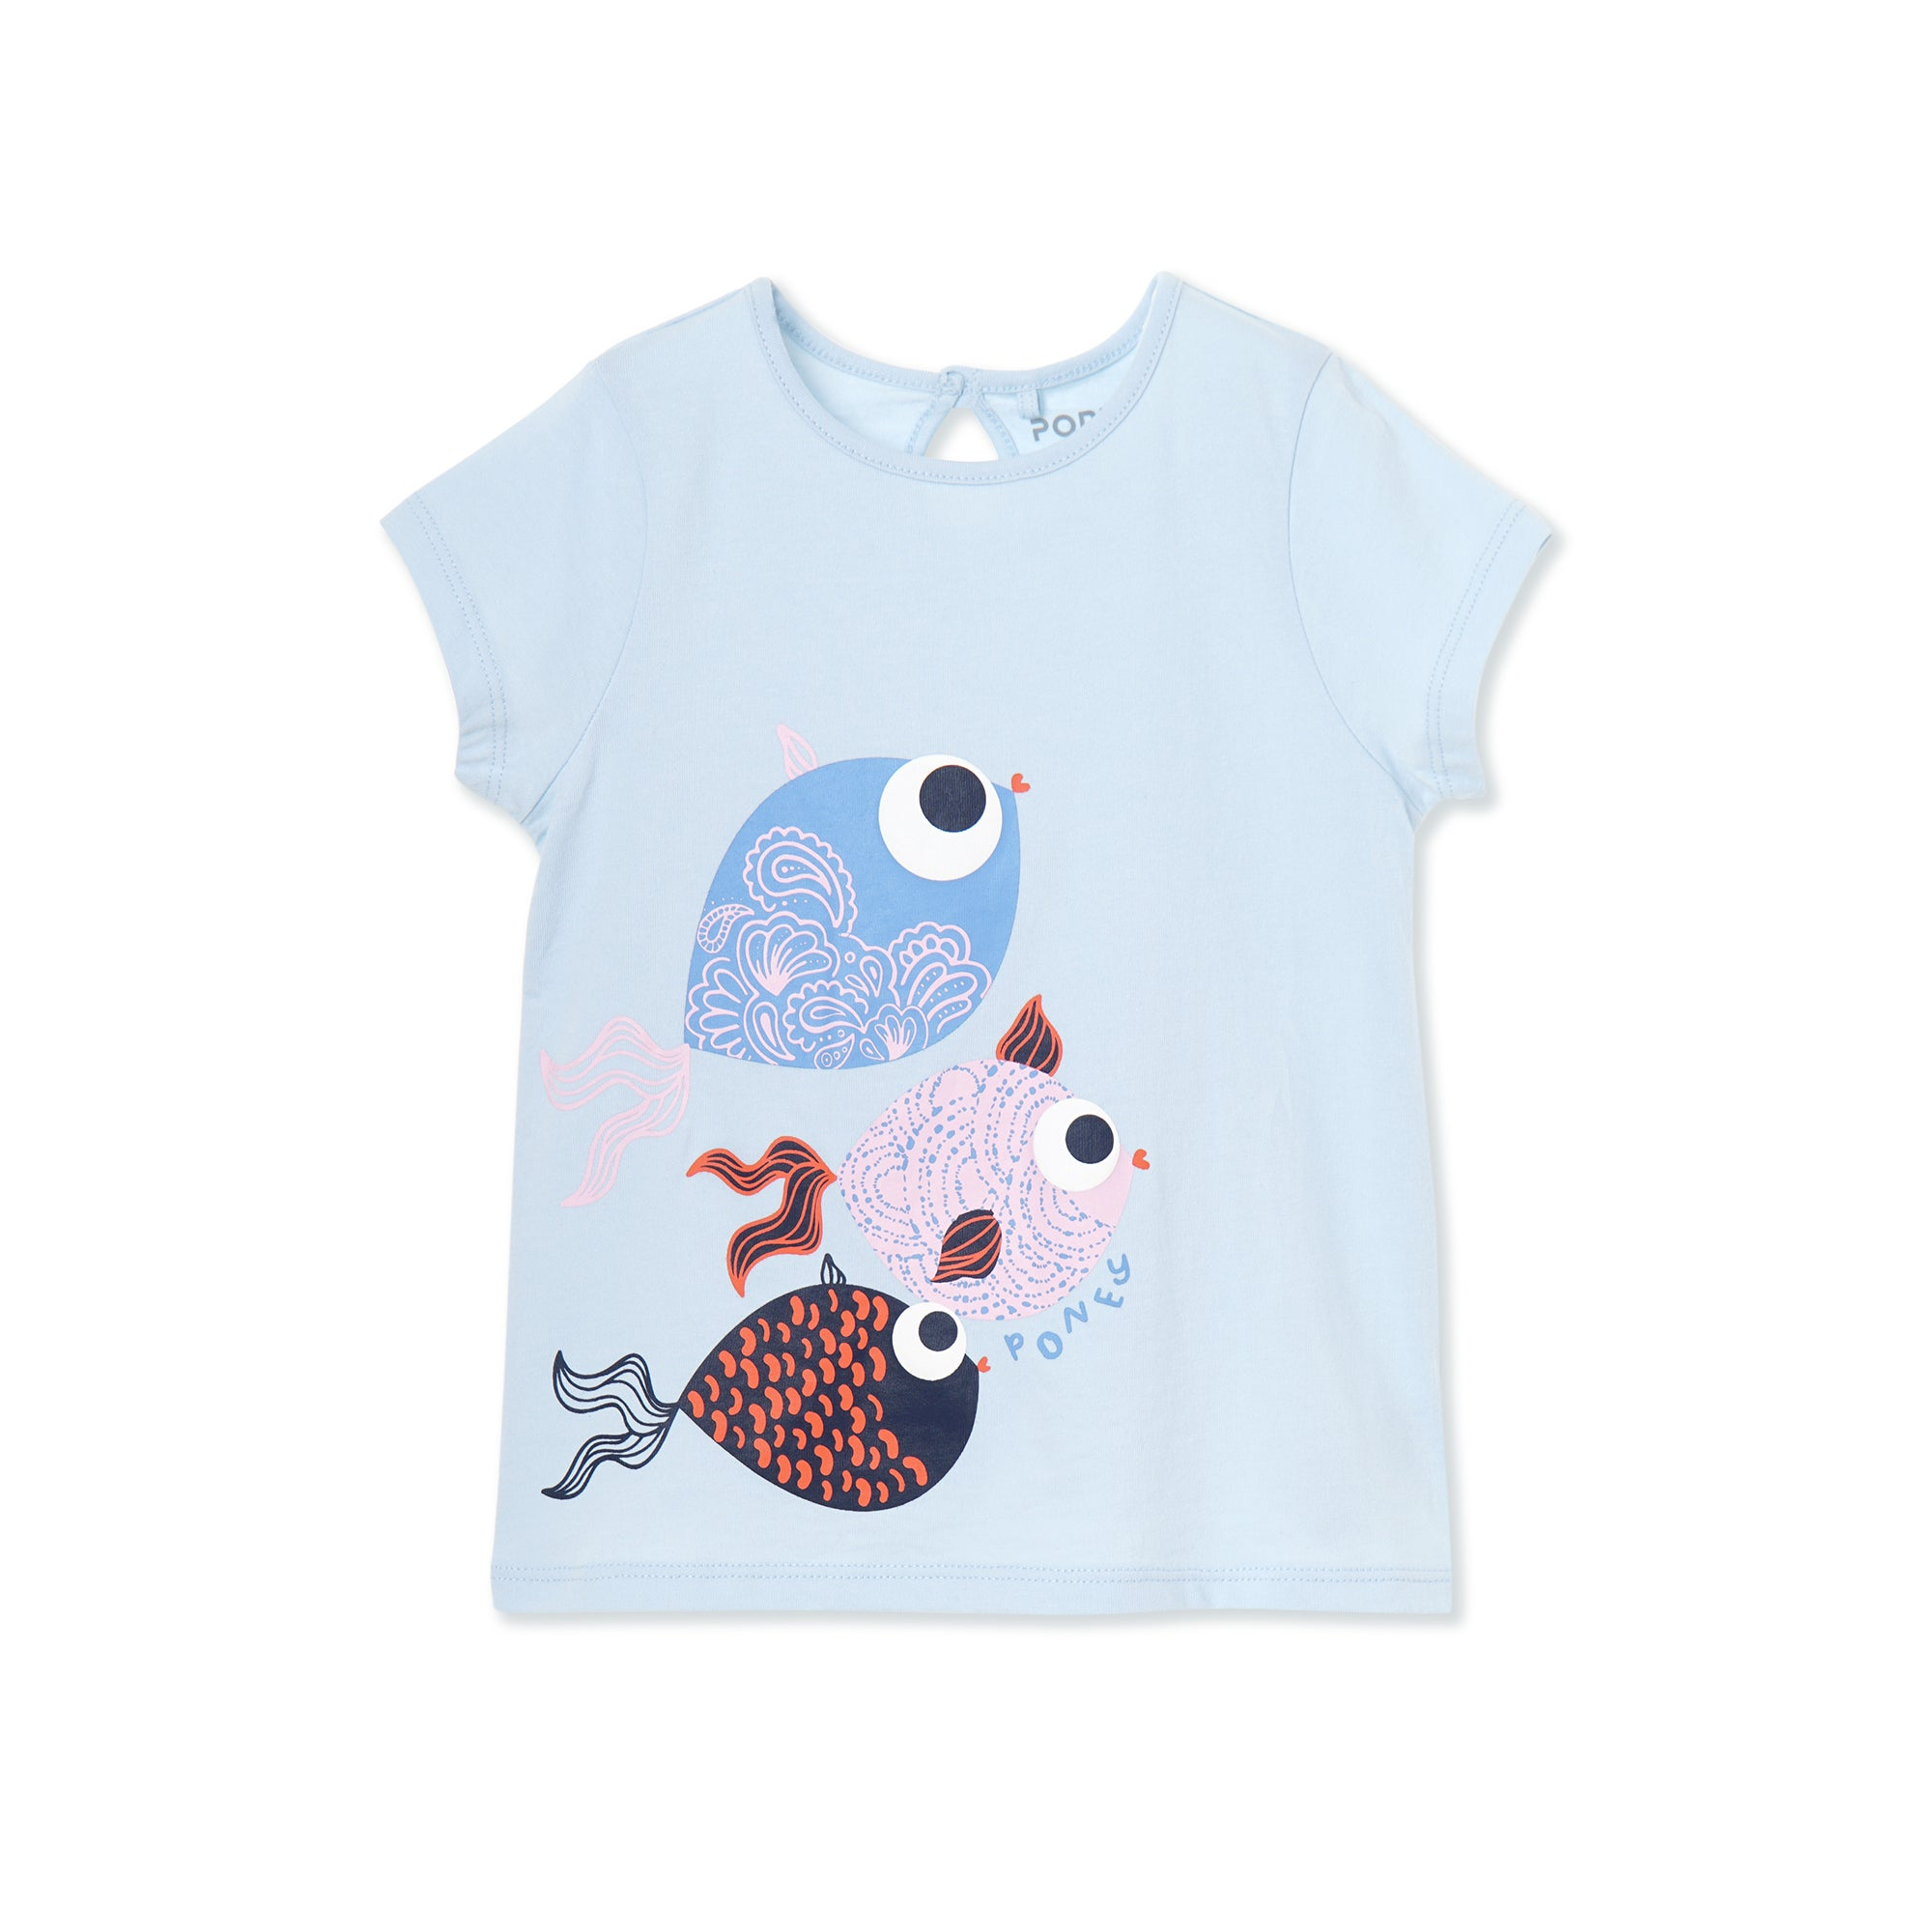 Poney Girls ShortSleeve Tee 8449 (6mths-12yrs)